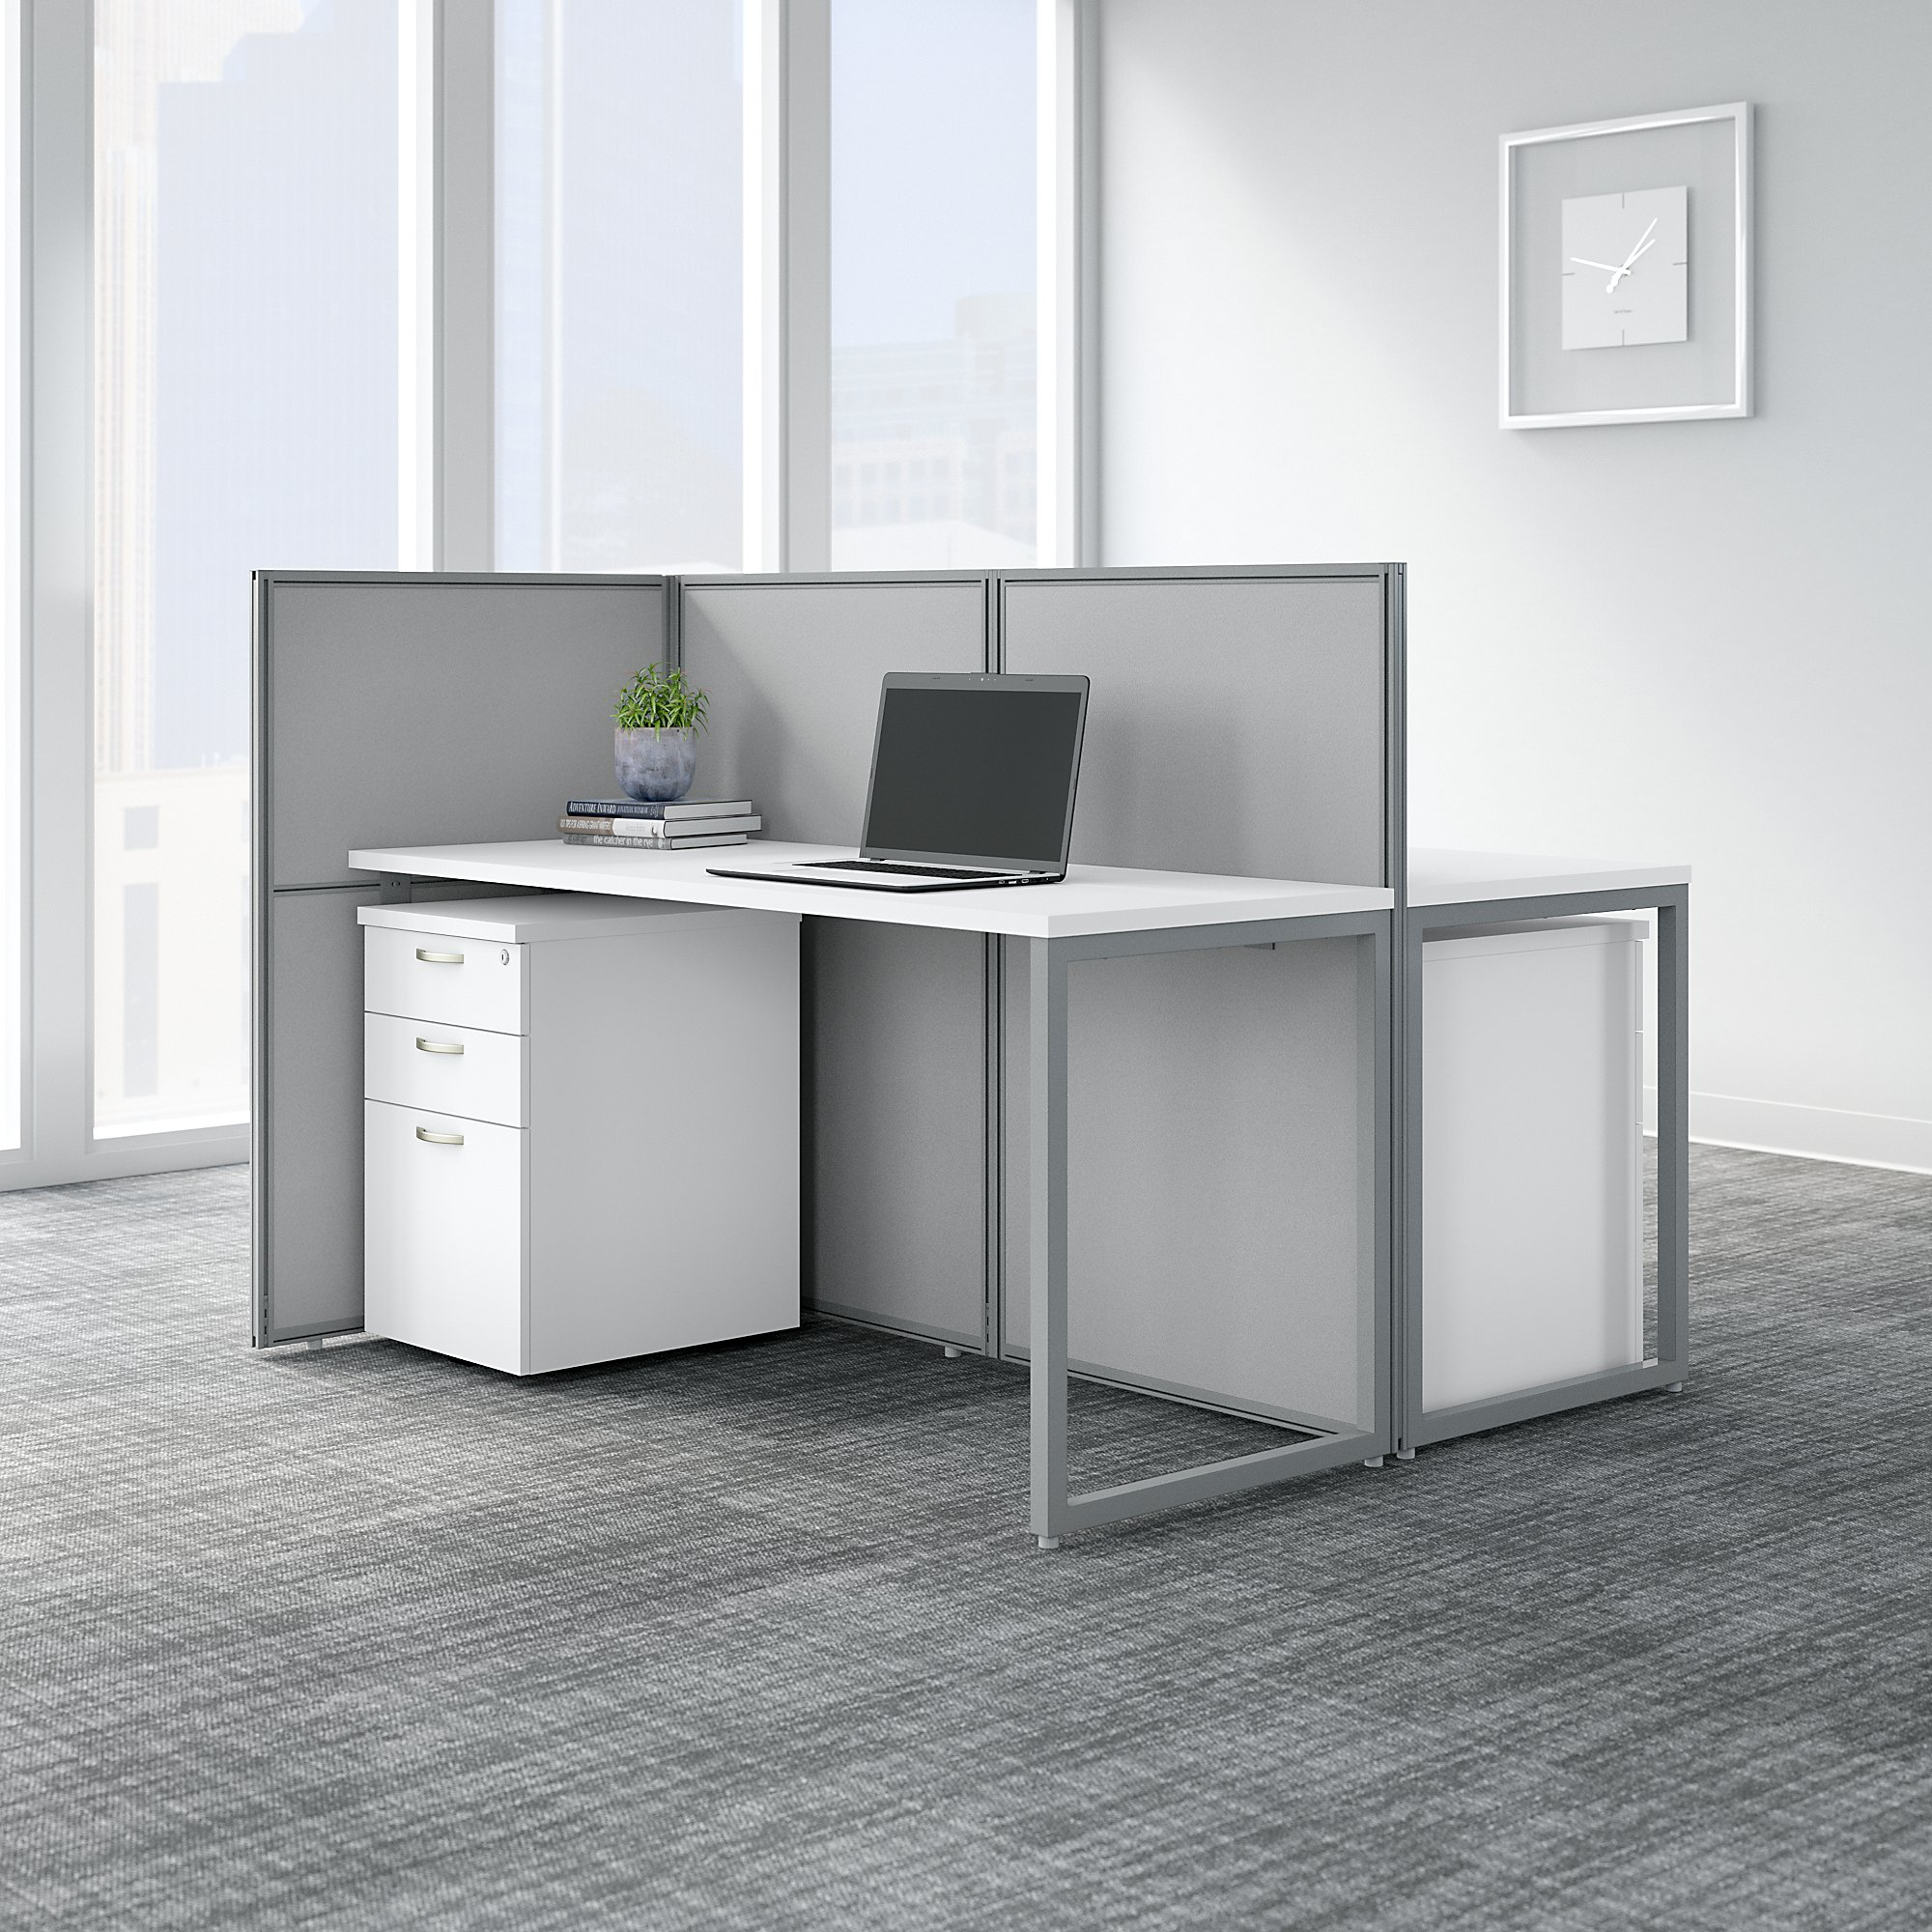 easy office white 2 person cubicle